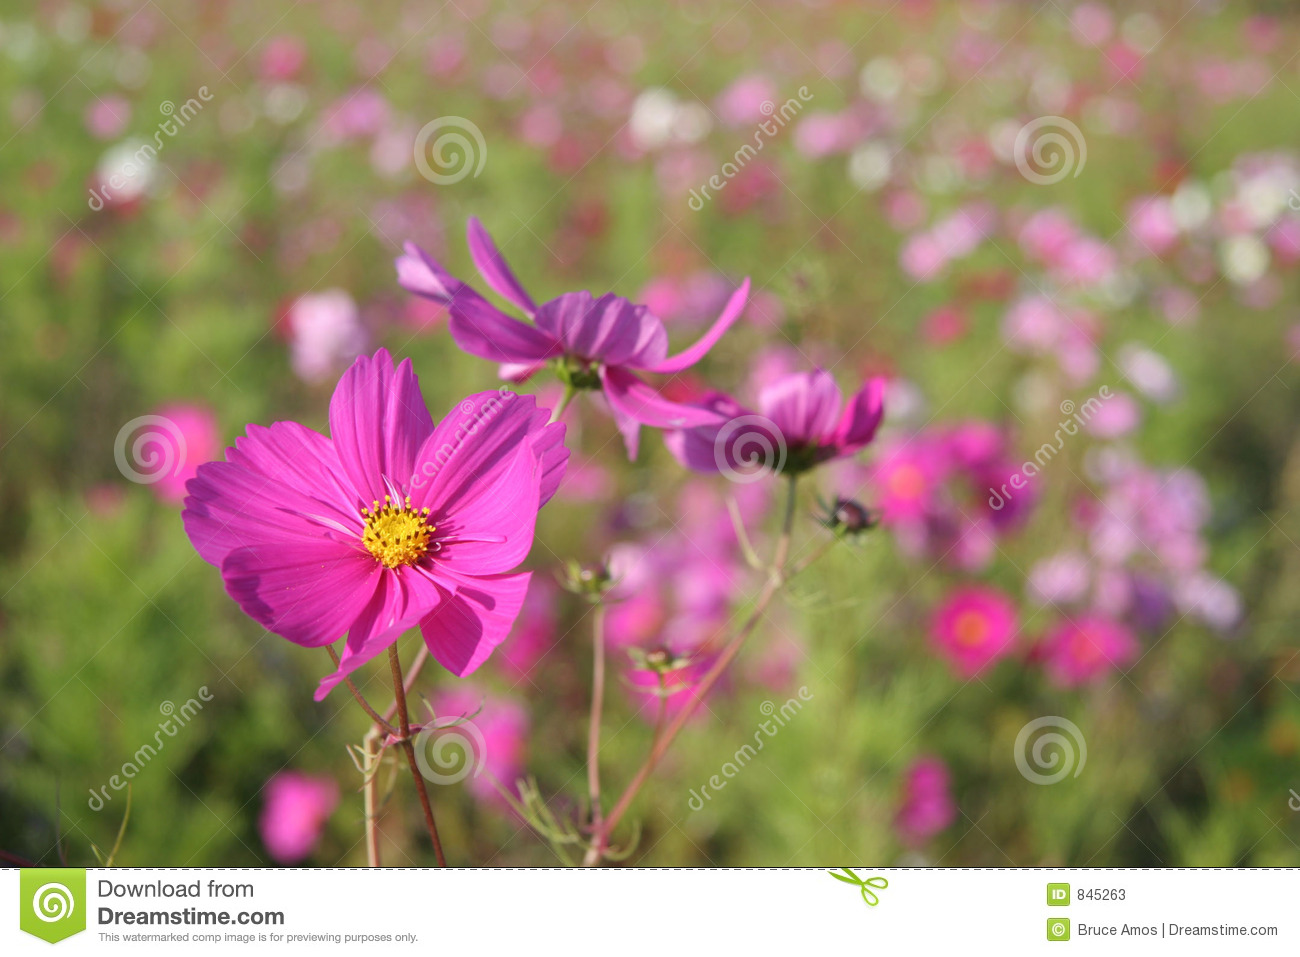 Cosmos flowers in France #5